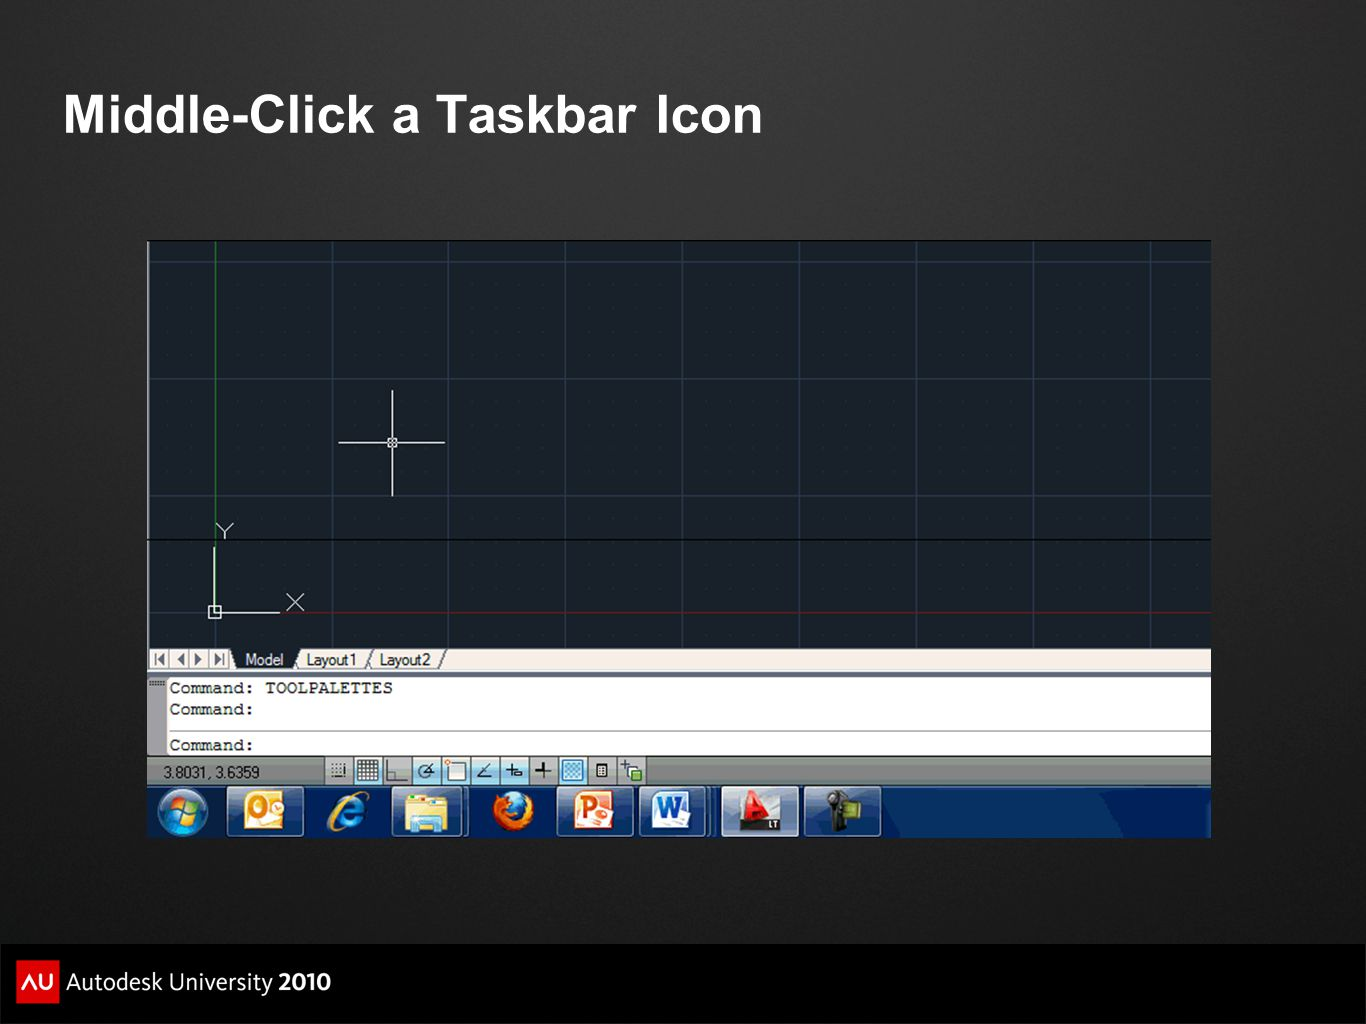 Middle-Click a Taskbar Icon